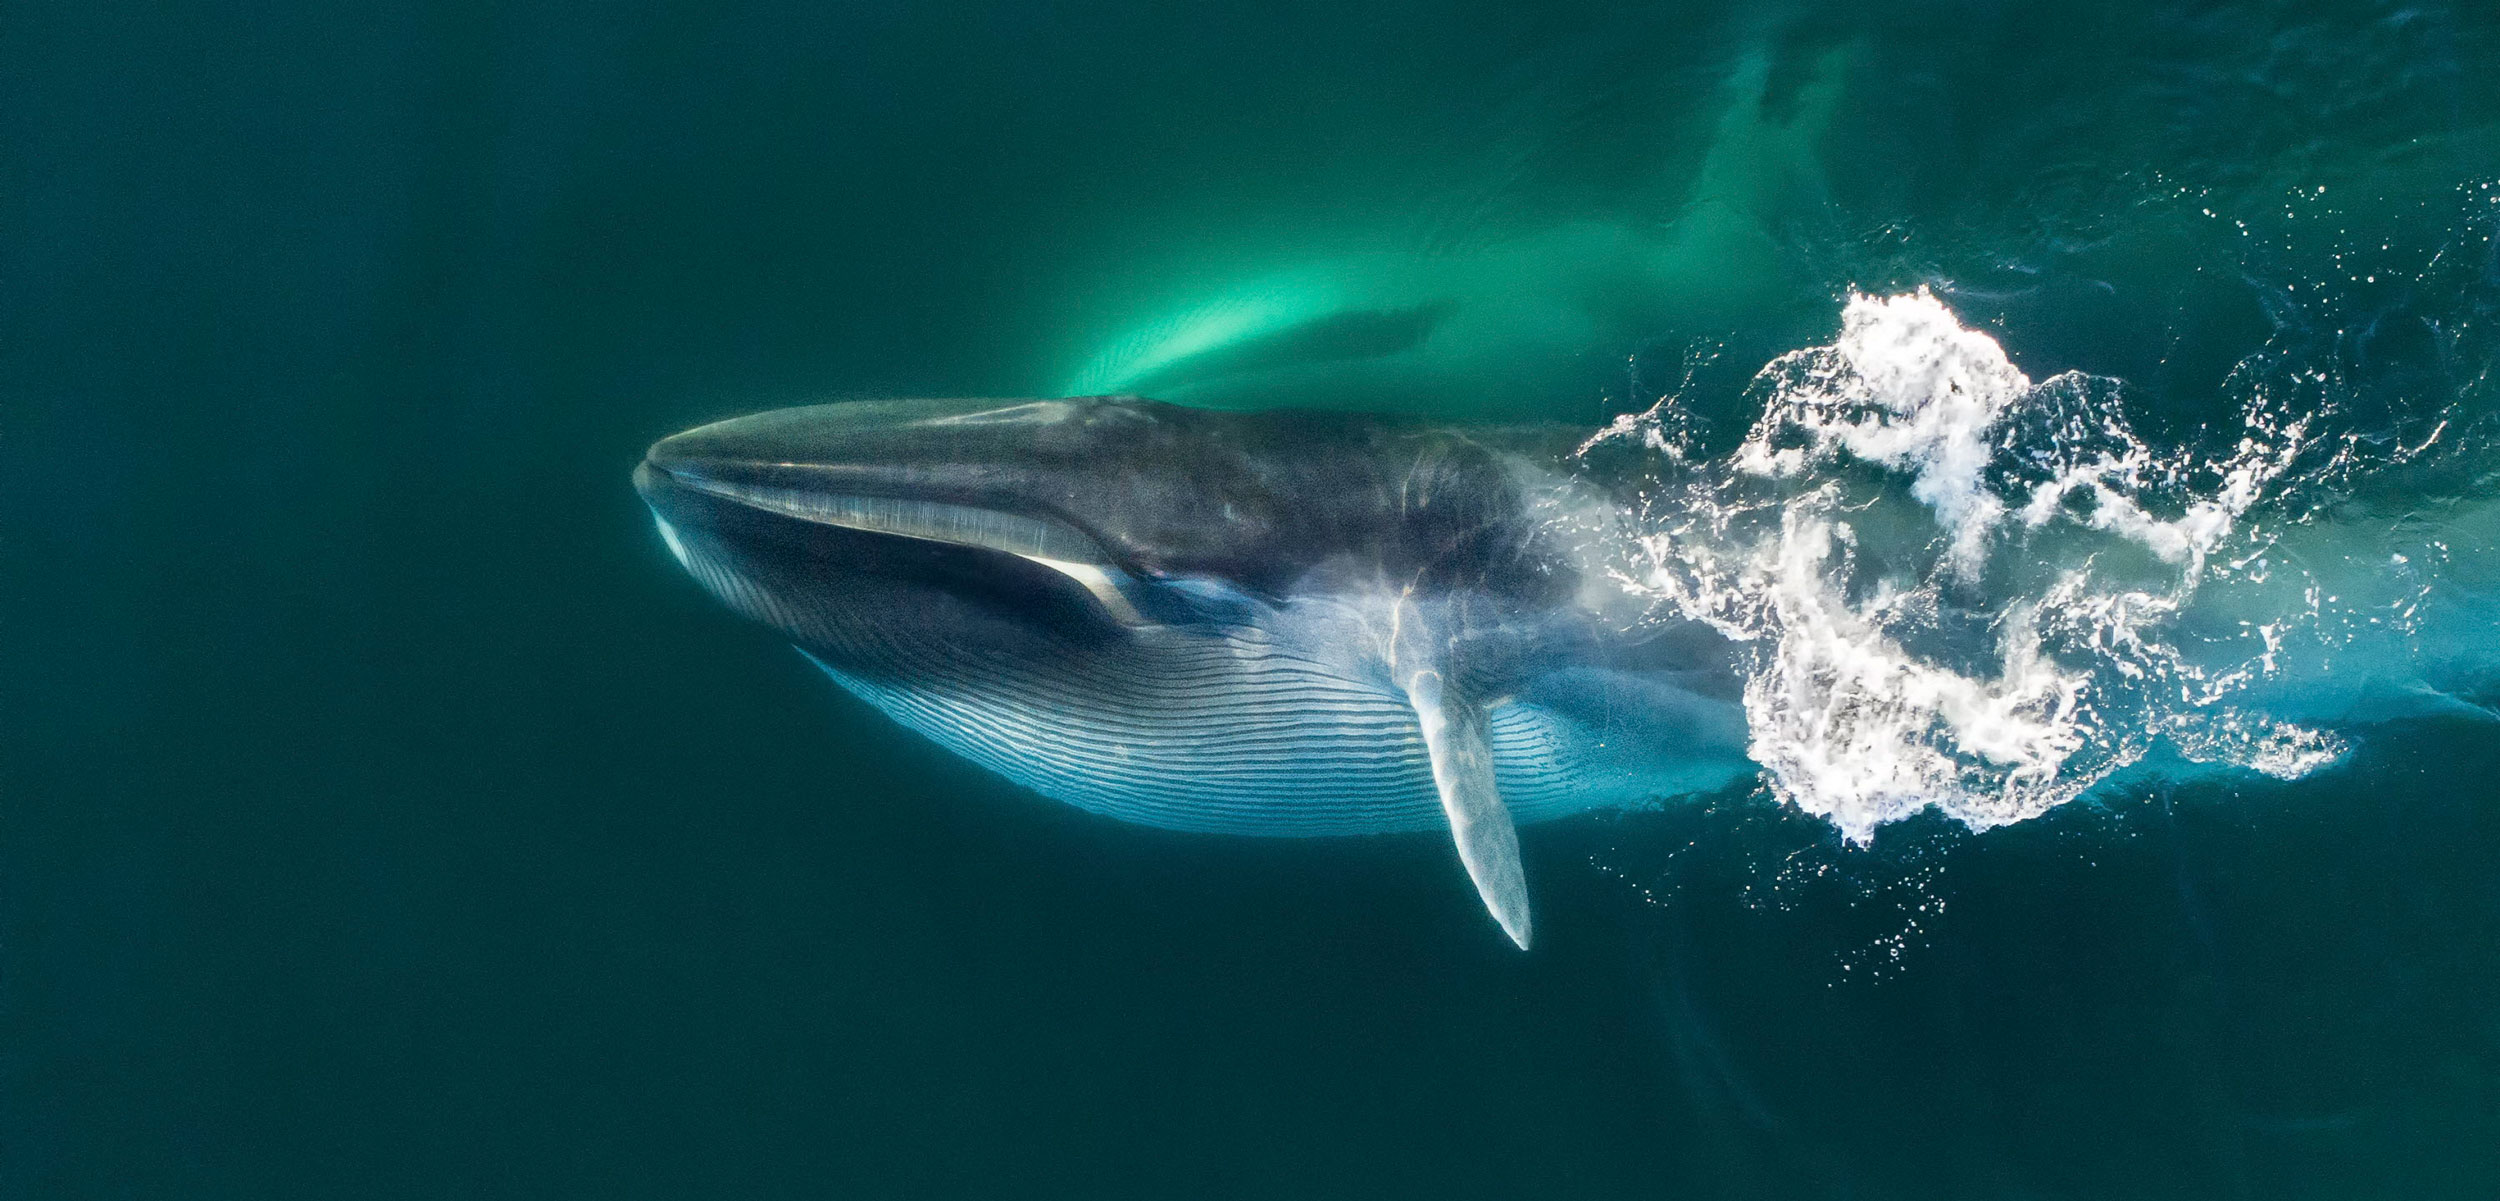 Aerial view of Fin whale (Balaenoptera physalus) lunge-feeding